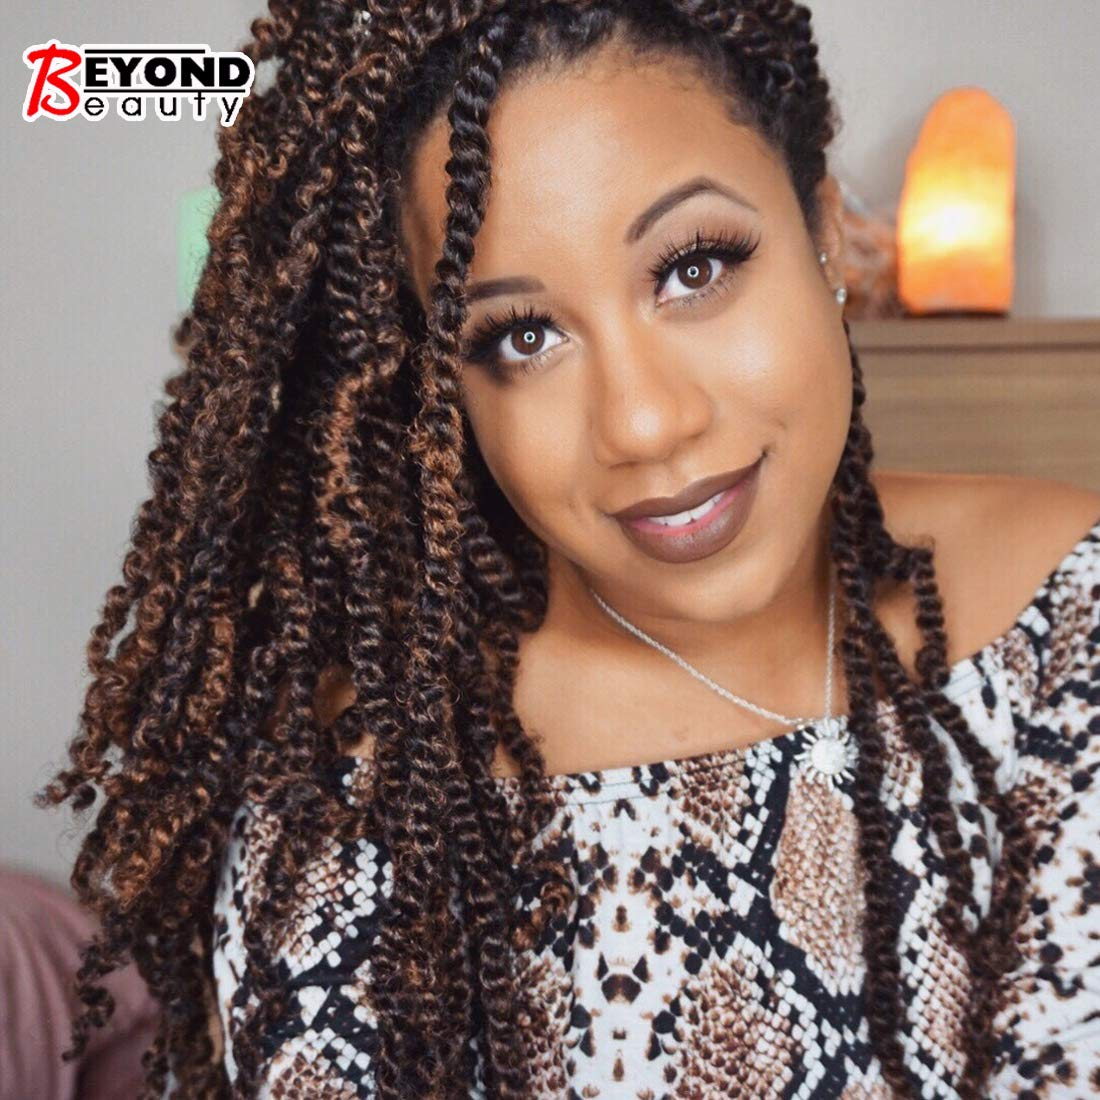 Cheap Sale Dindong Three Tone Colors Ombre Kanekalon Jumbo Braids 24 Inch Synthetic Crochet Braiding Hair Extensions Ideal Gift For All Occasions Jumbo Braids